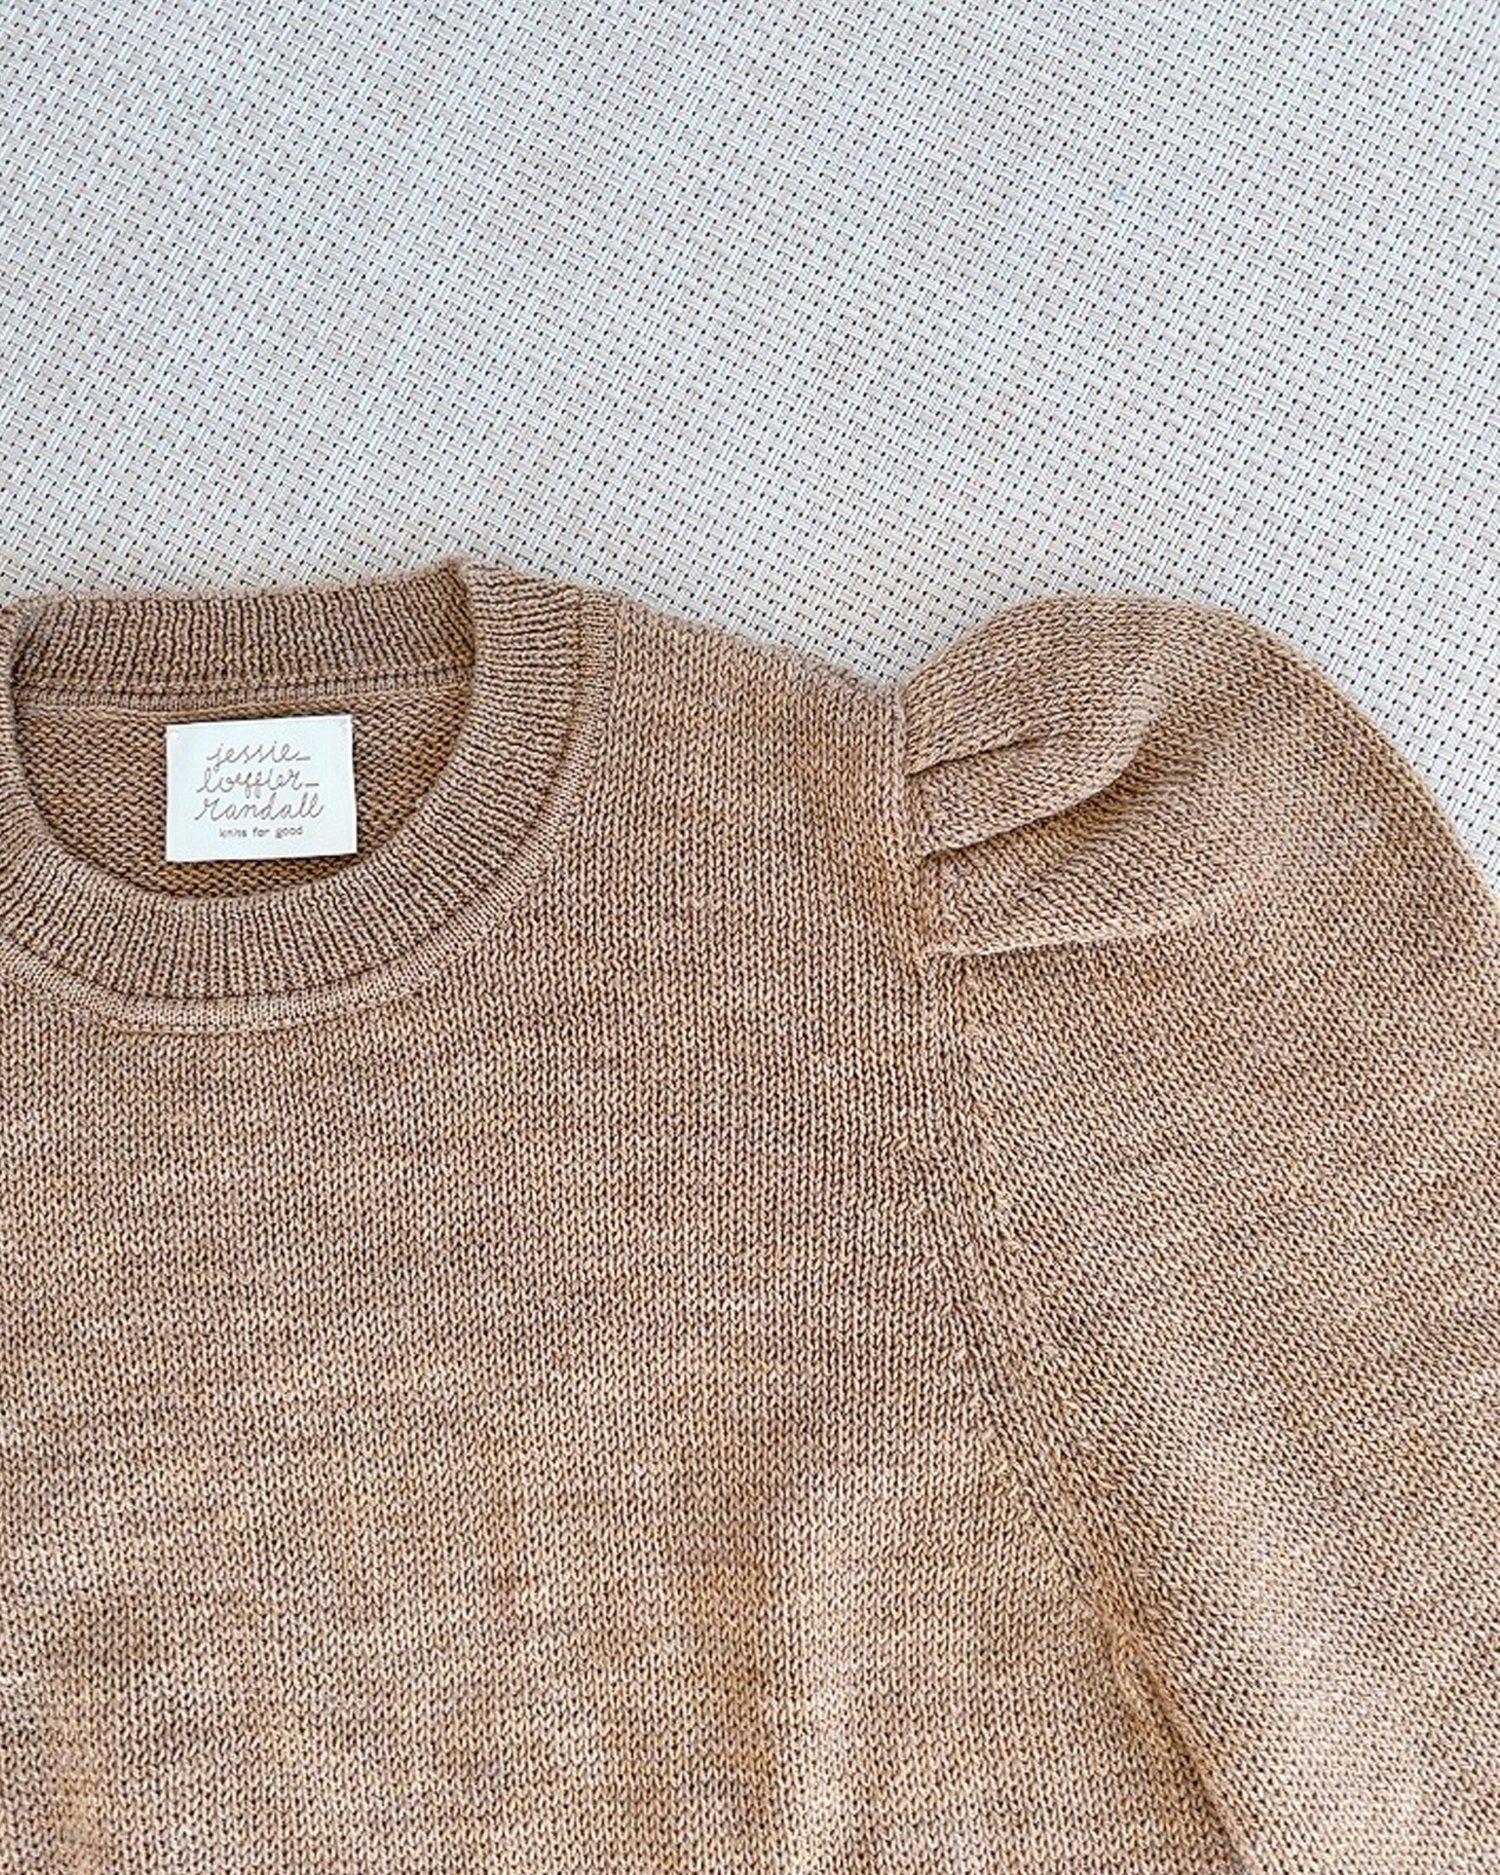 Knits for Good Camel Sweater 2